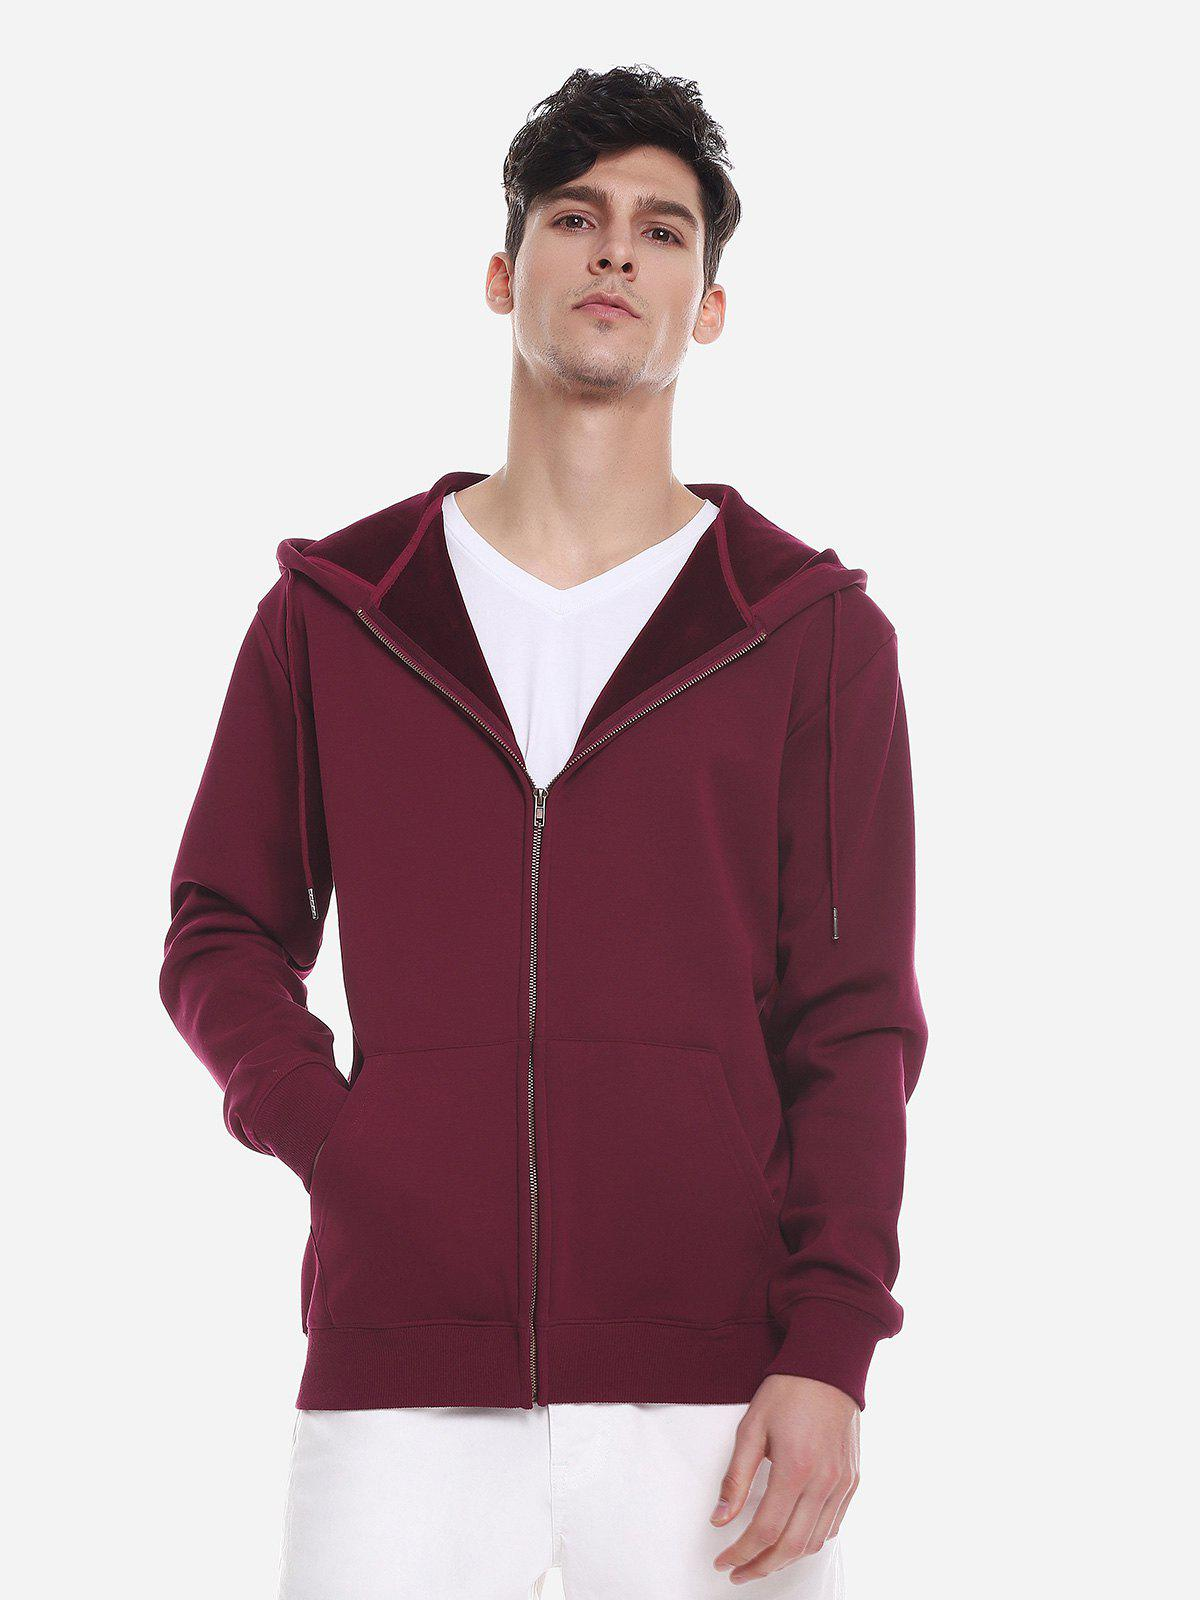 ZAN.STYLE Zip Up Pocket Hooded Sweatshirt